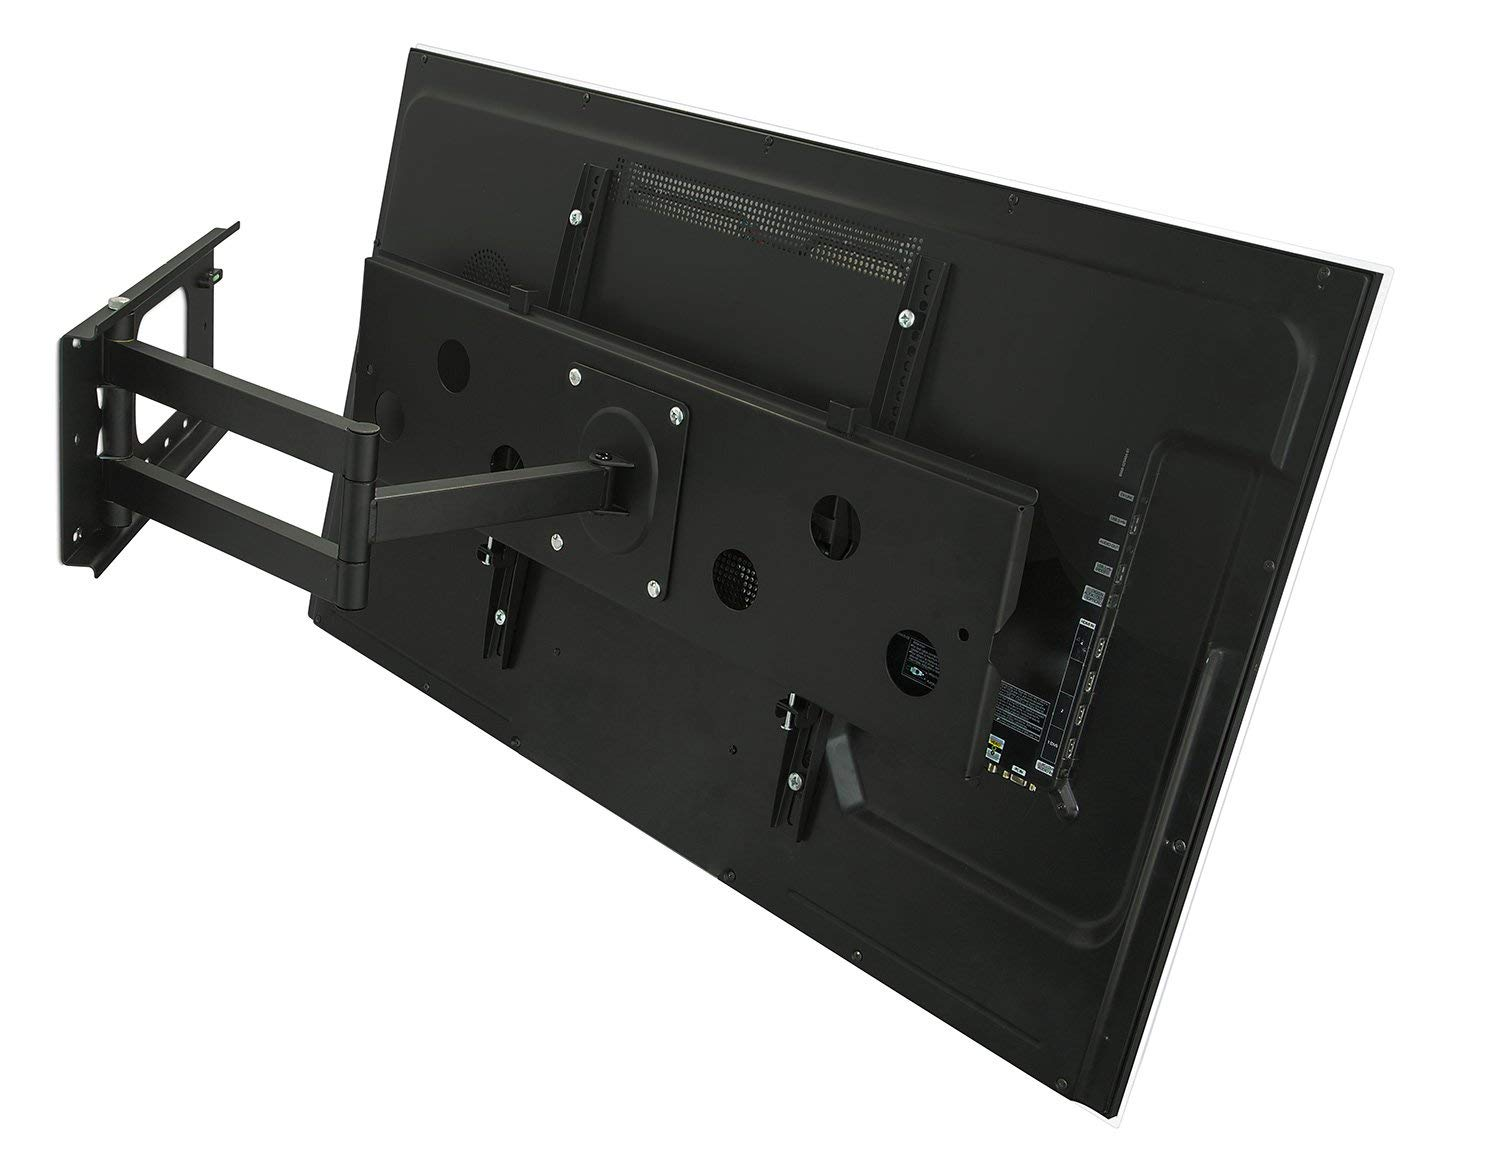 Mount-It! Long Arm TV Wall Mount With 26 Inch Extension, Swing Out Full Motion Design for Corner Installation, Fits 40 50, 55, 60, 65, 70 Inch Flat Screen TVs, 220 Pound Capacity by Everstone (Image #3)